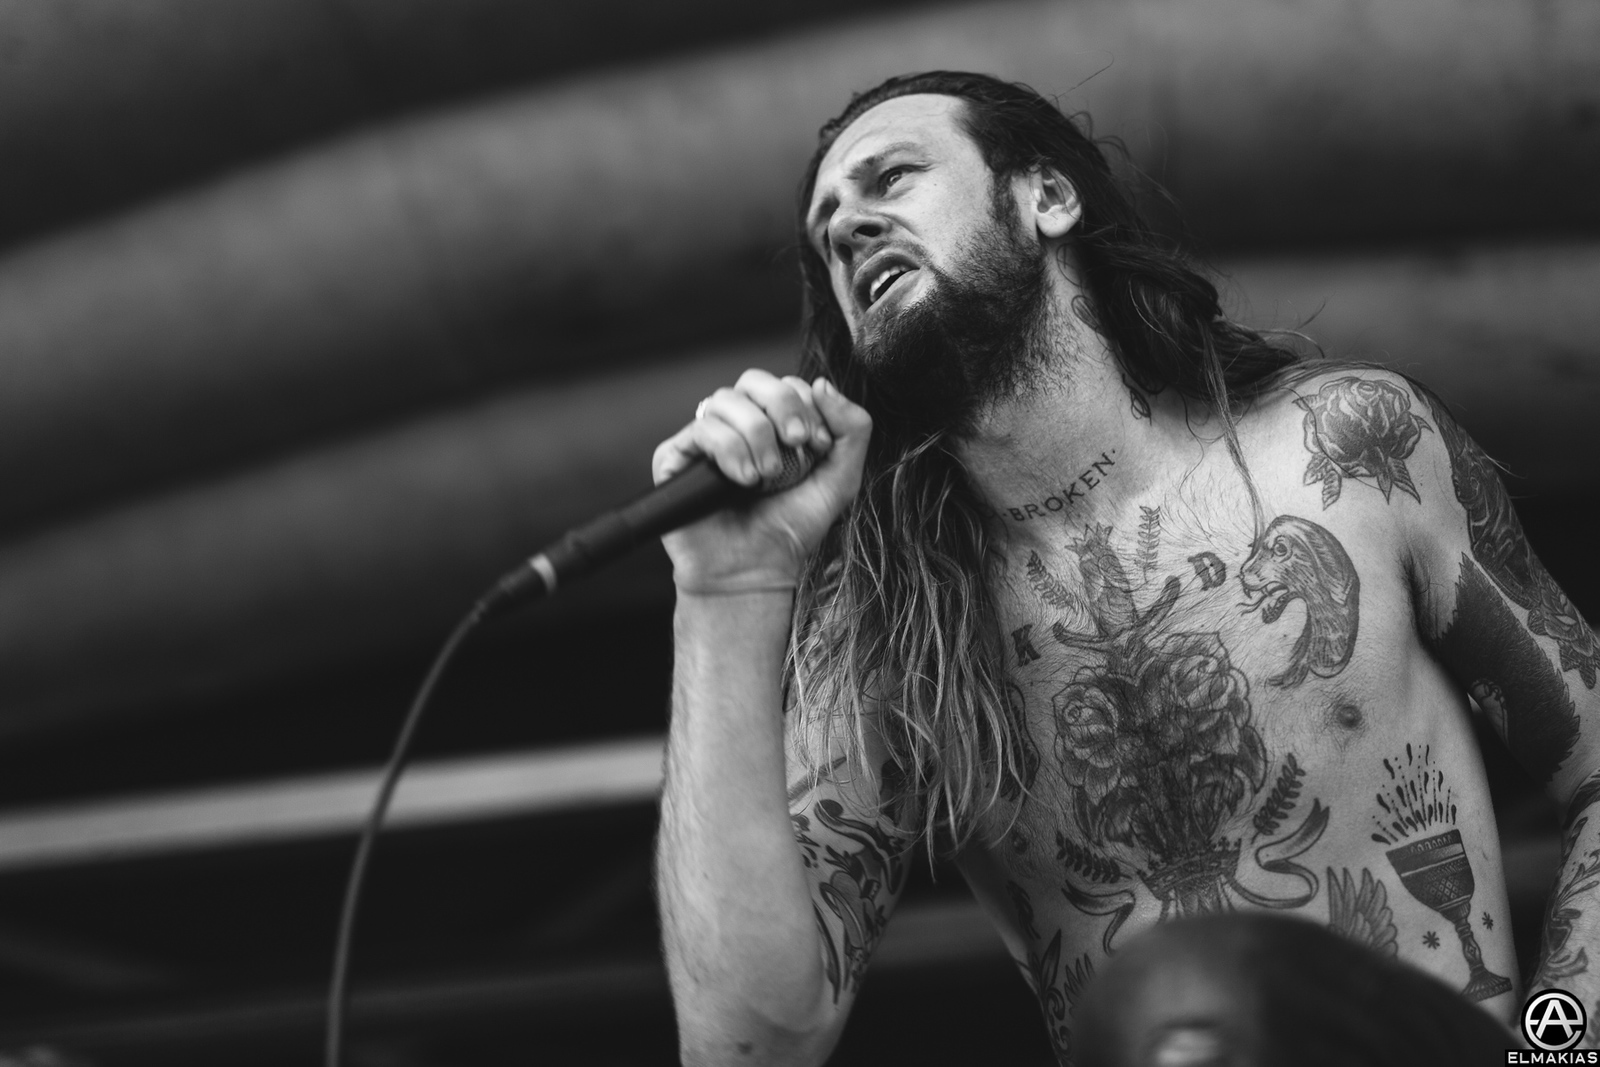 Lawrence Taylor of While She Sleeps at Vans Warped Tour 2015 by Adam Elmakias